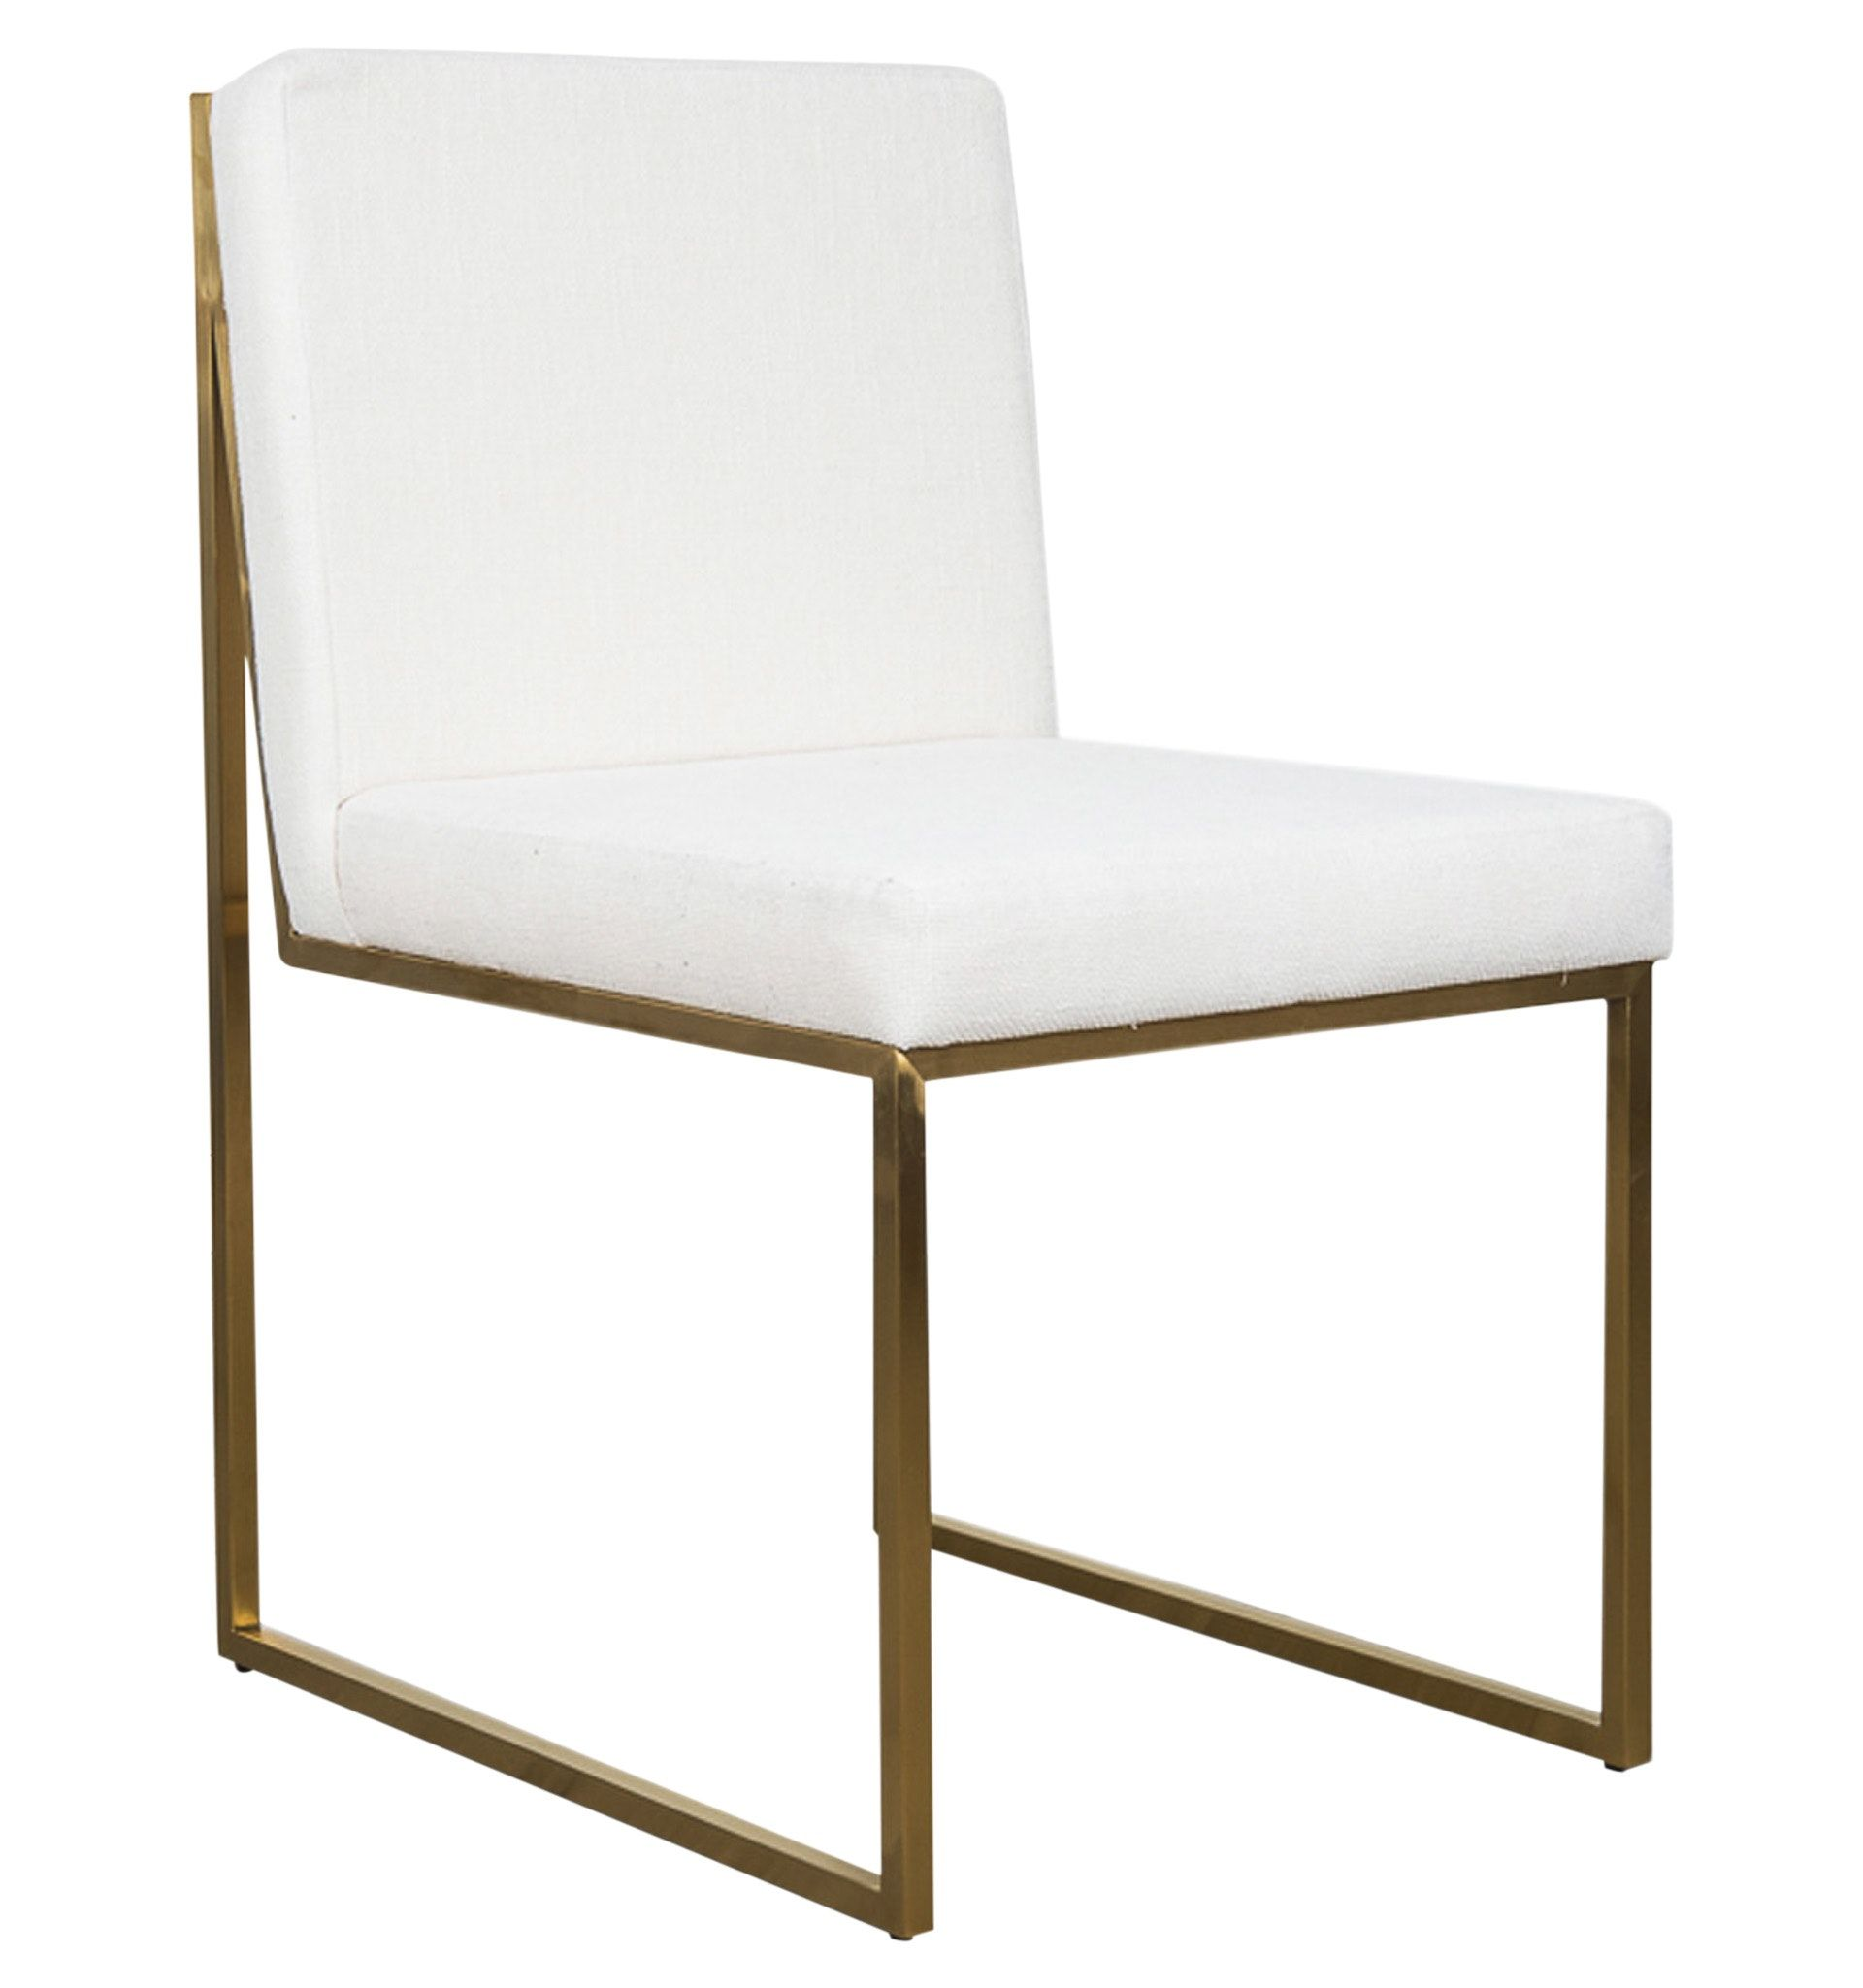 Attrayant Buy Goldfinger Dining Chair By ModShop   Made To Order Designer Furniture  From Dering